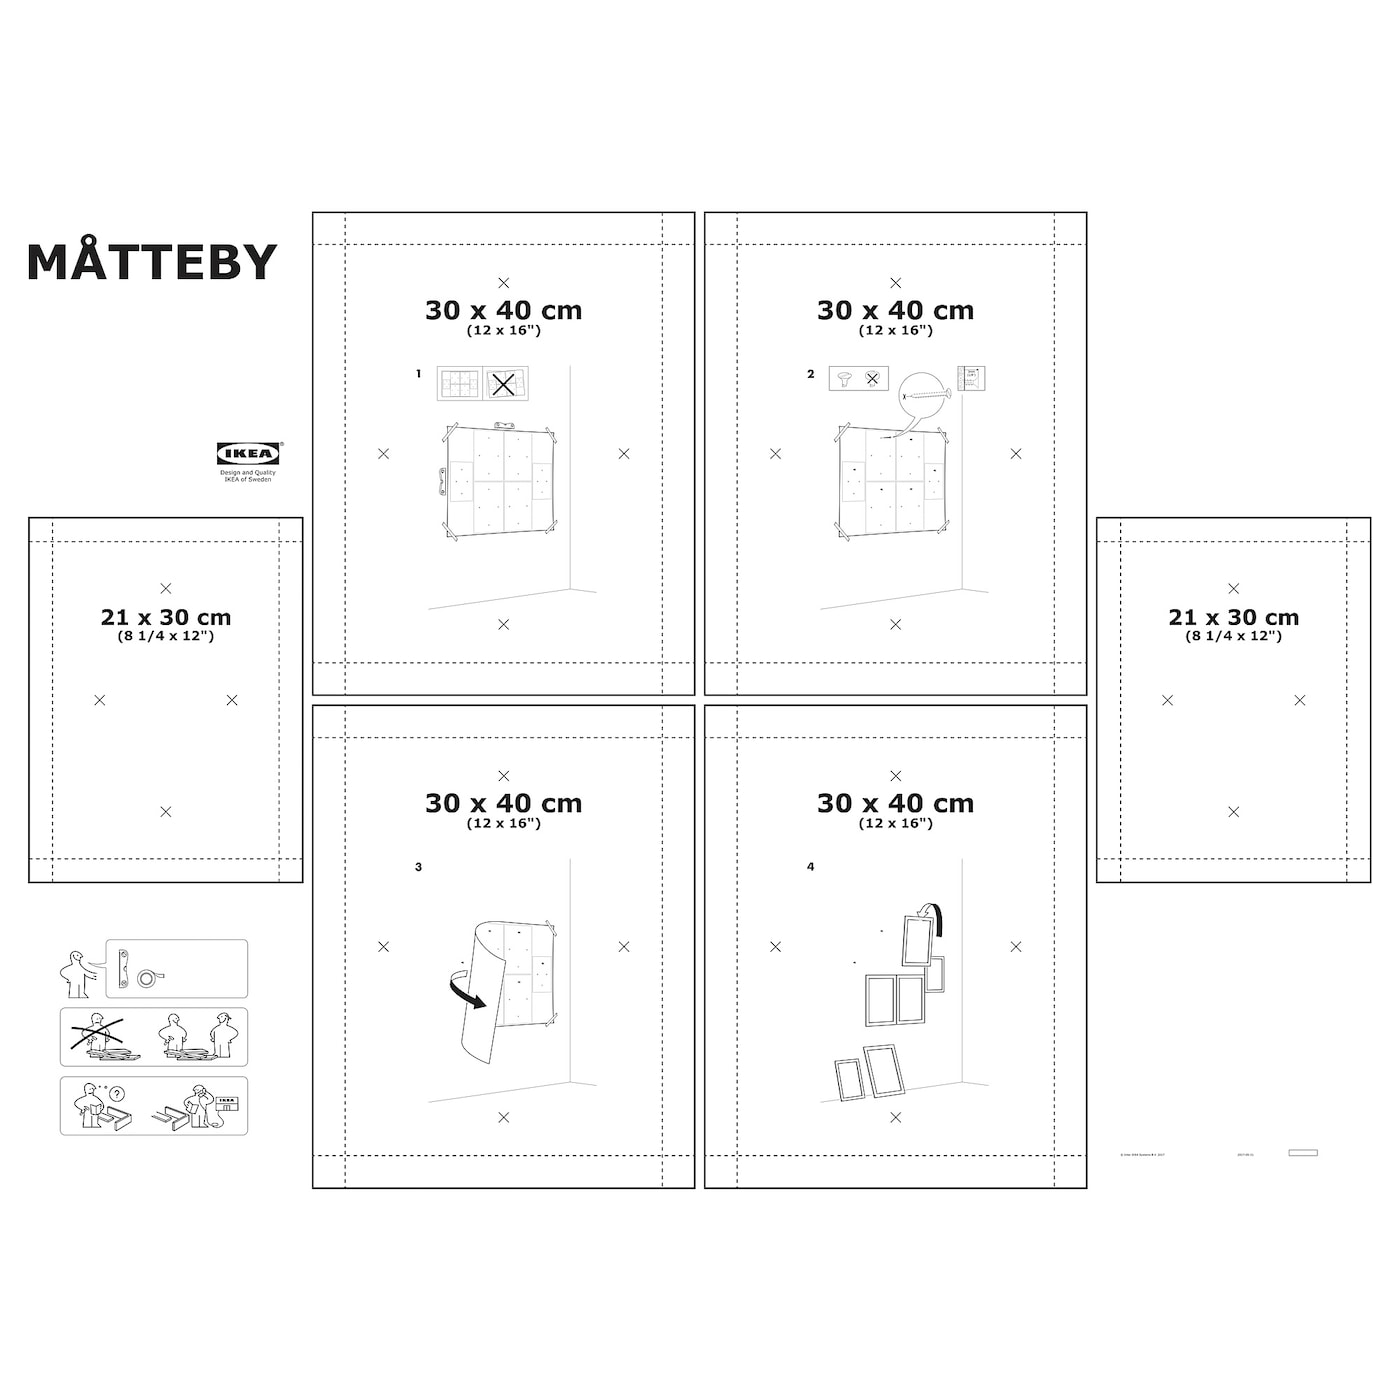 Ikea Matteby Wall Template Set Of 4 Create A Personal Collage With The Wall Template